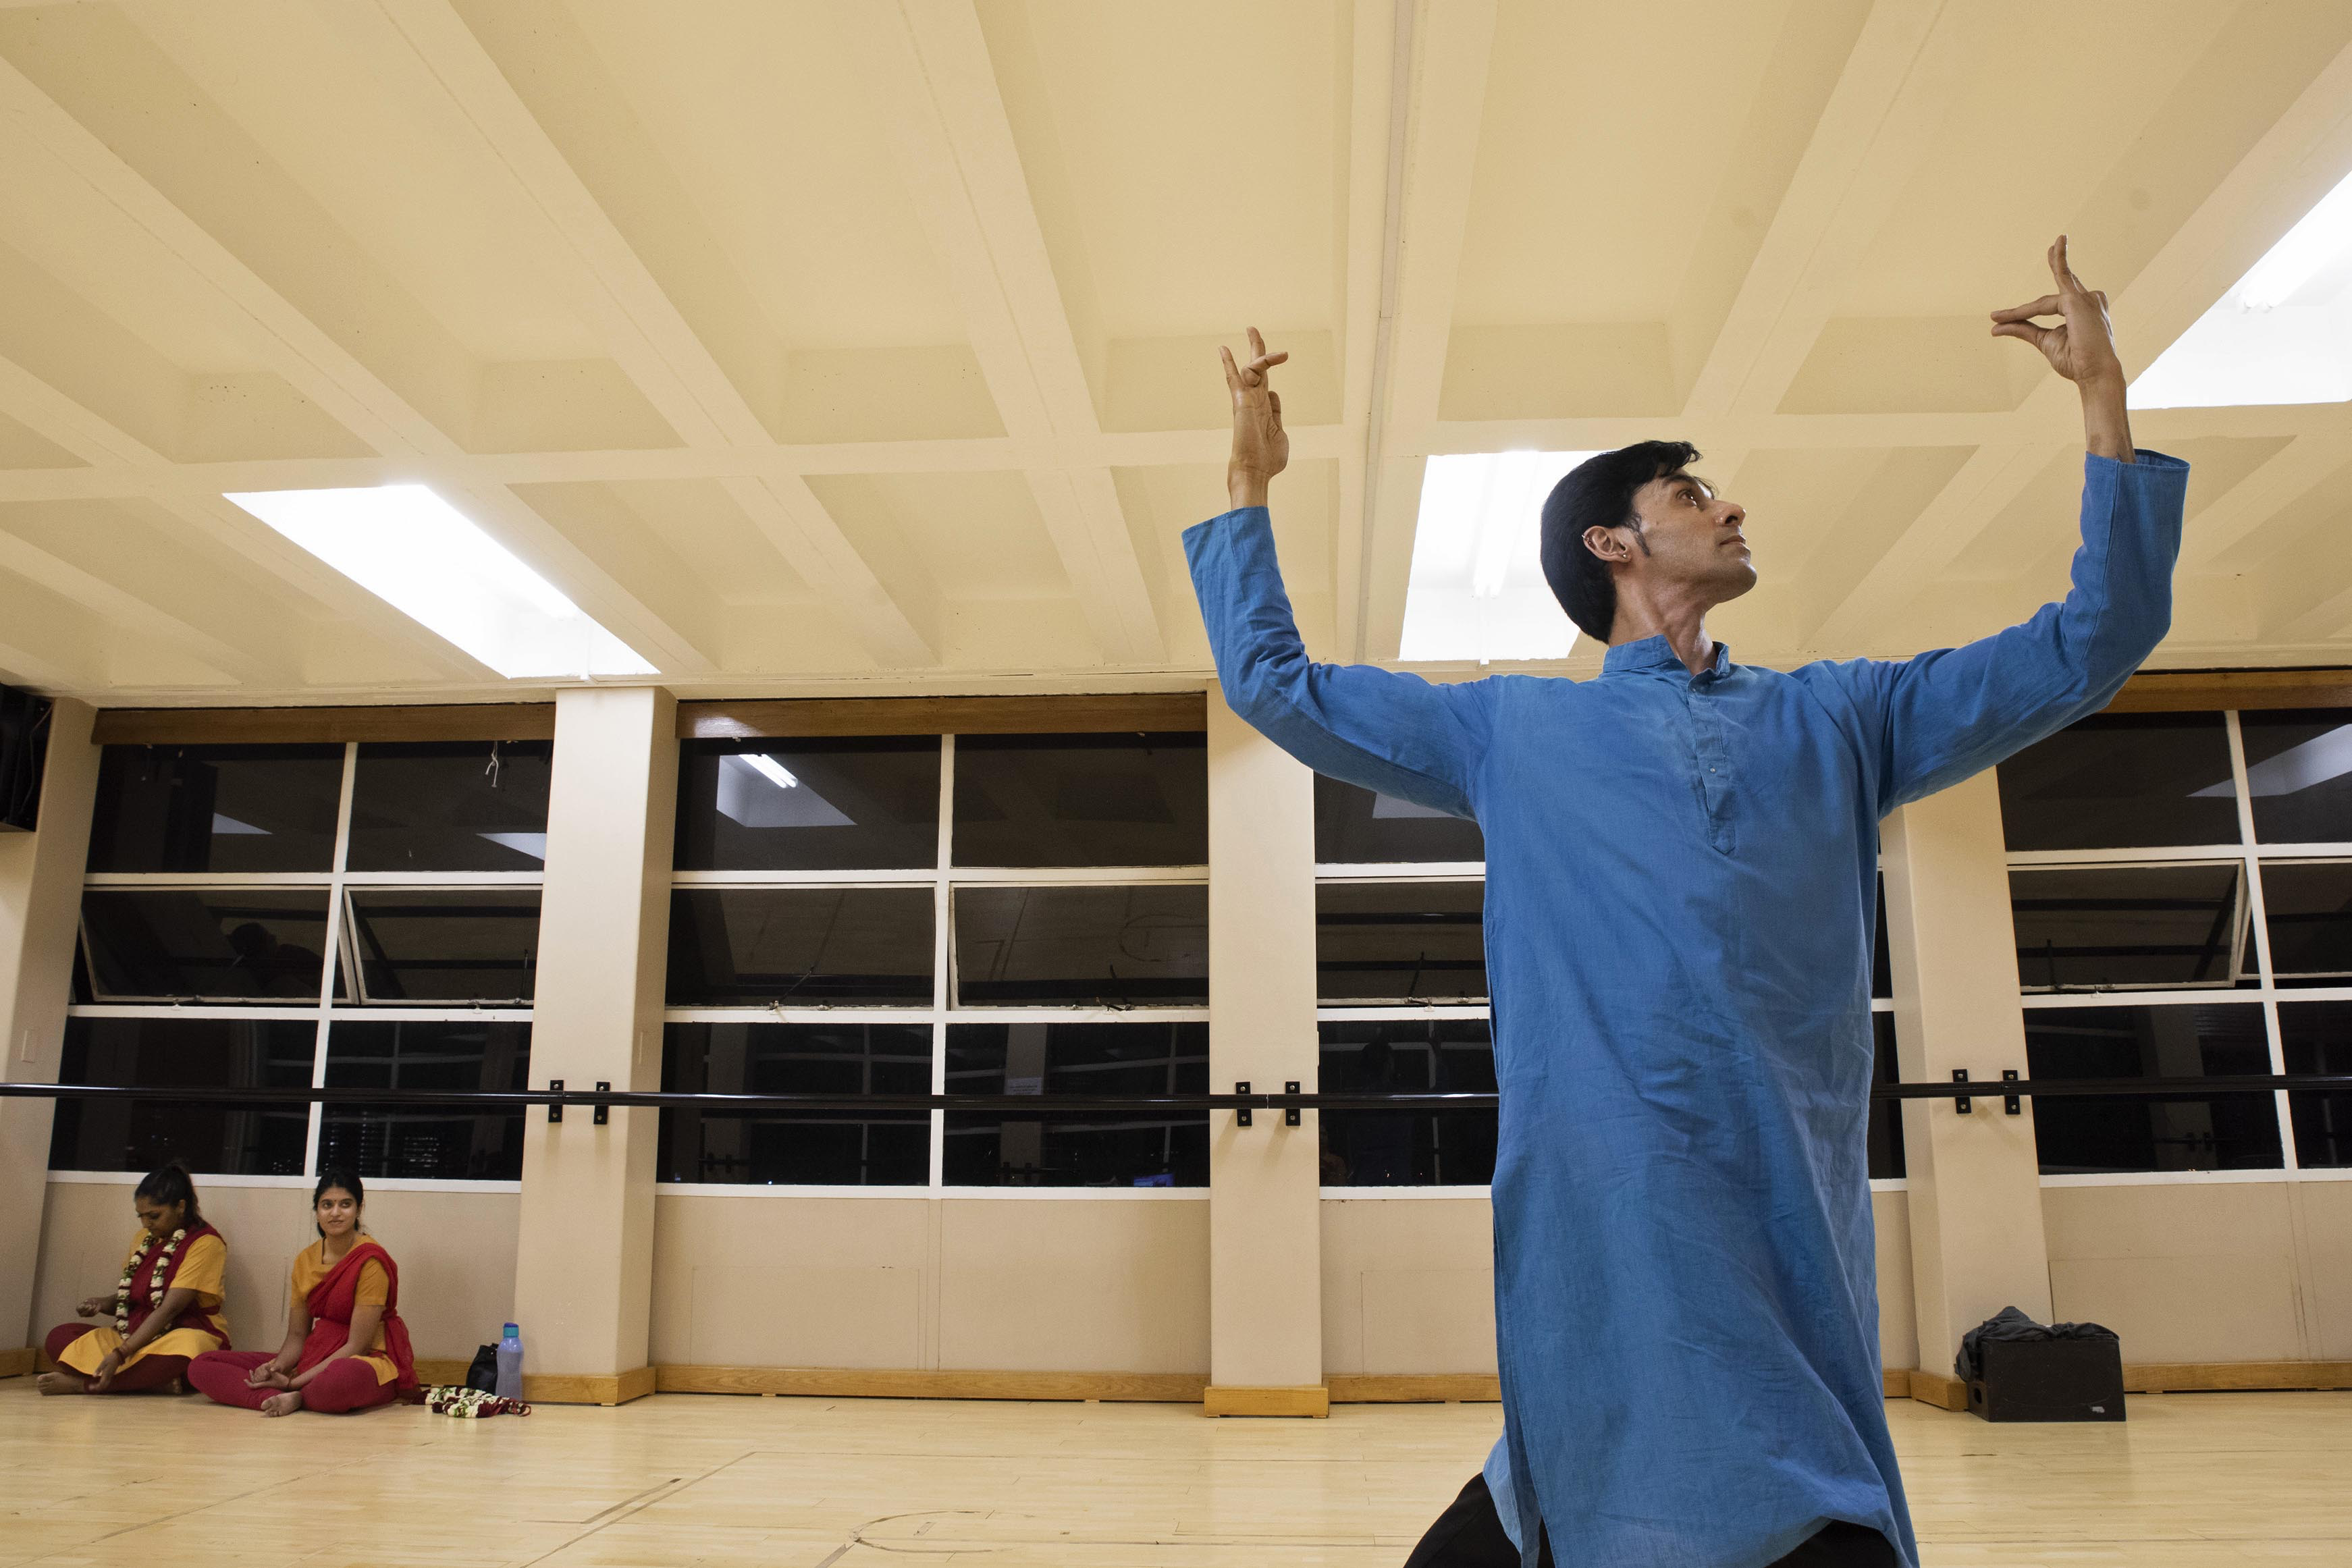 5 November 2018: Manesh Maharaj rehearsing for 'Sati: Shiva's Beloved' which will be performed at the Joburg Fringe Theatre.